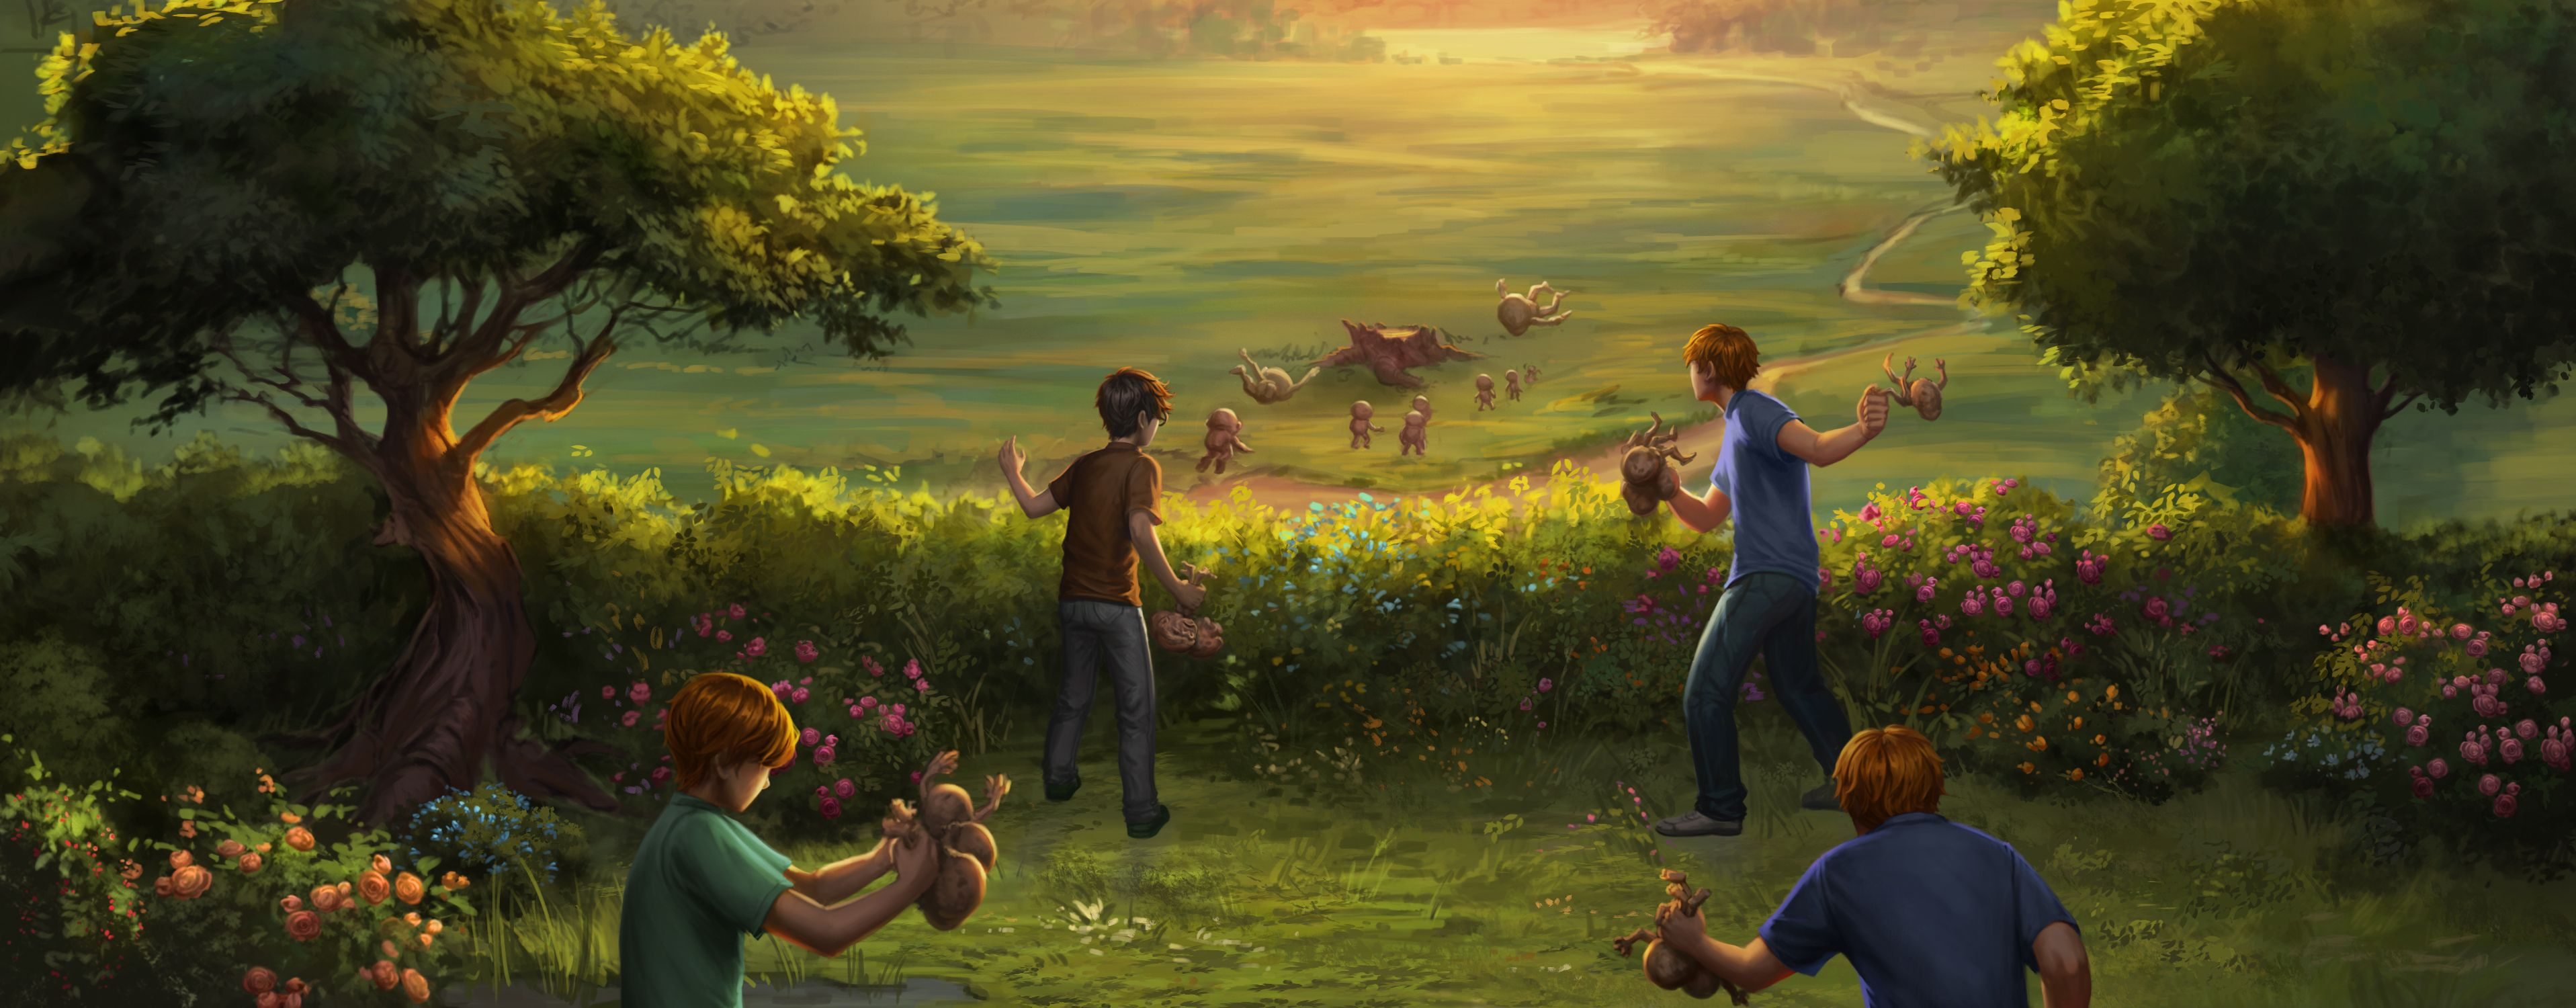 Harry helps Ron, Fred and George de-gnome the garden of The Burrow ...